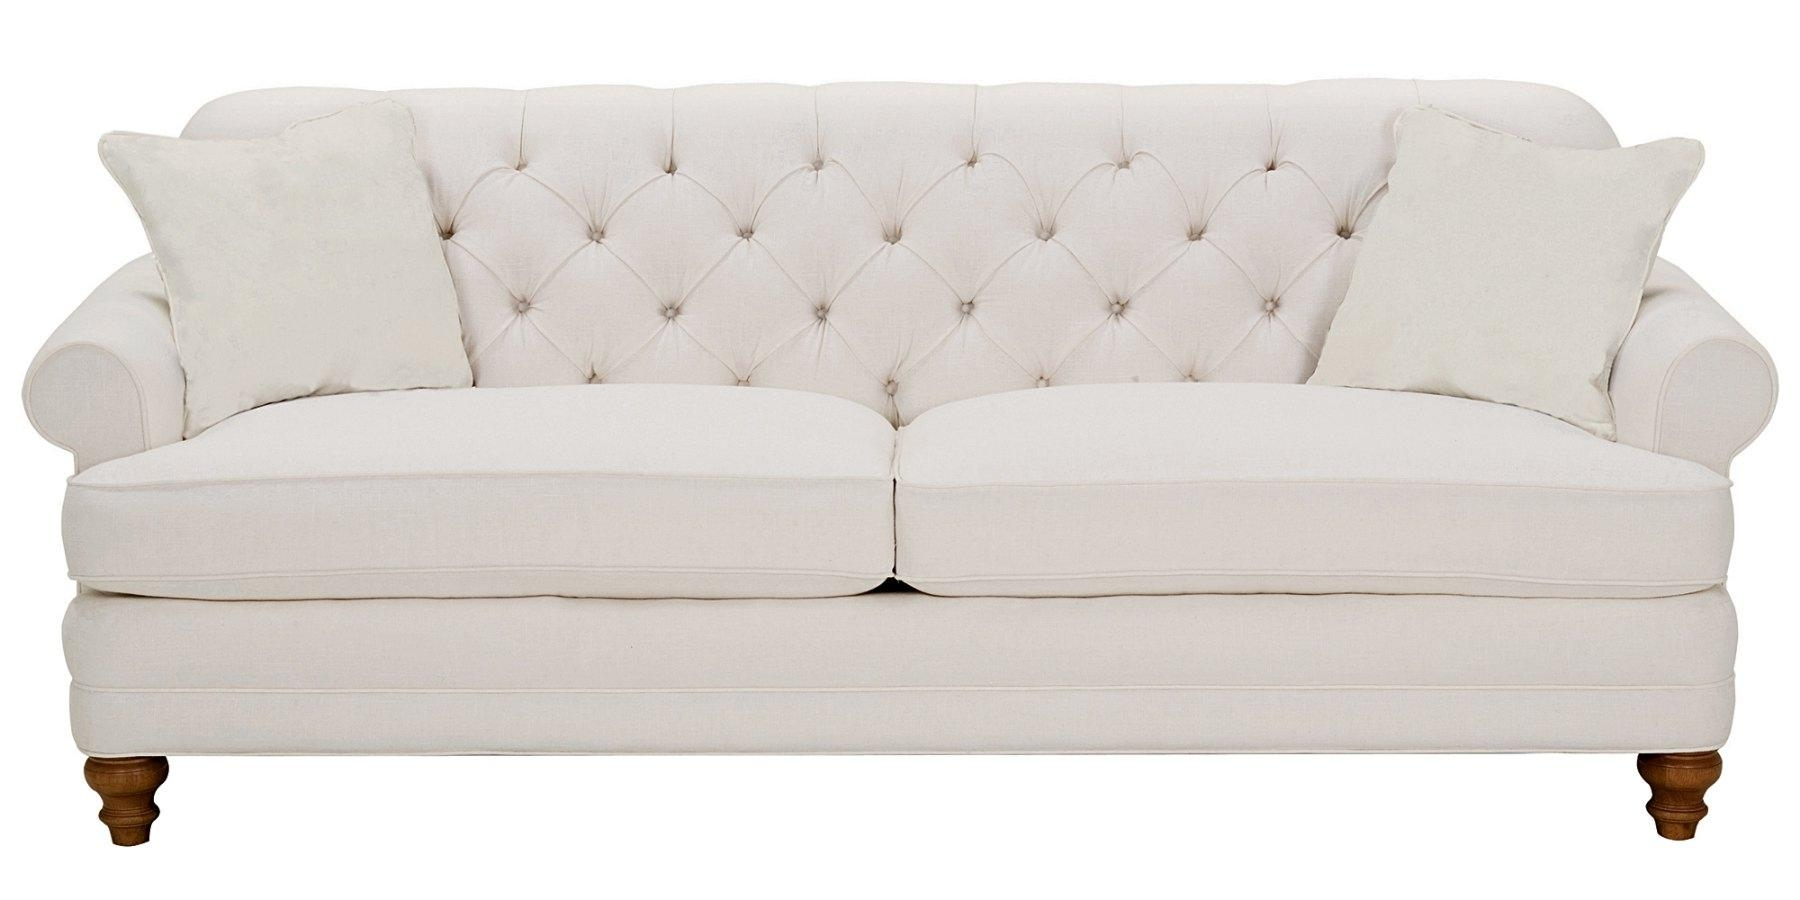 High Back Sofa For Sale | Tehranmix Decoration Intended For Sofas With High Backs (Image 7 of 20)